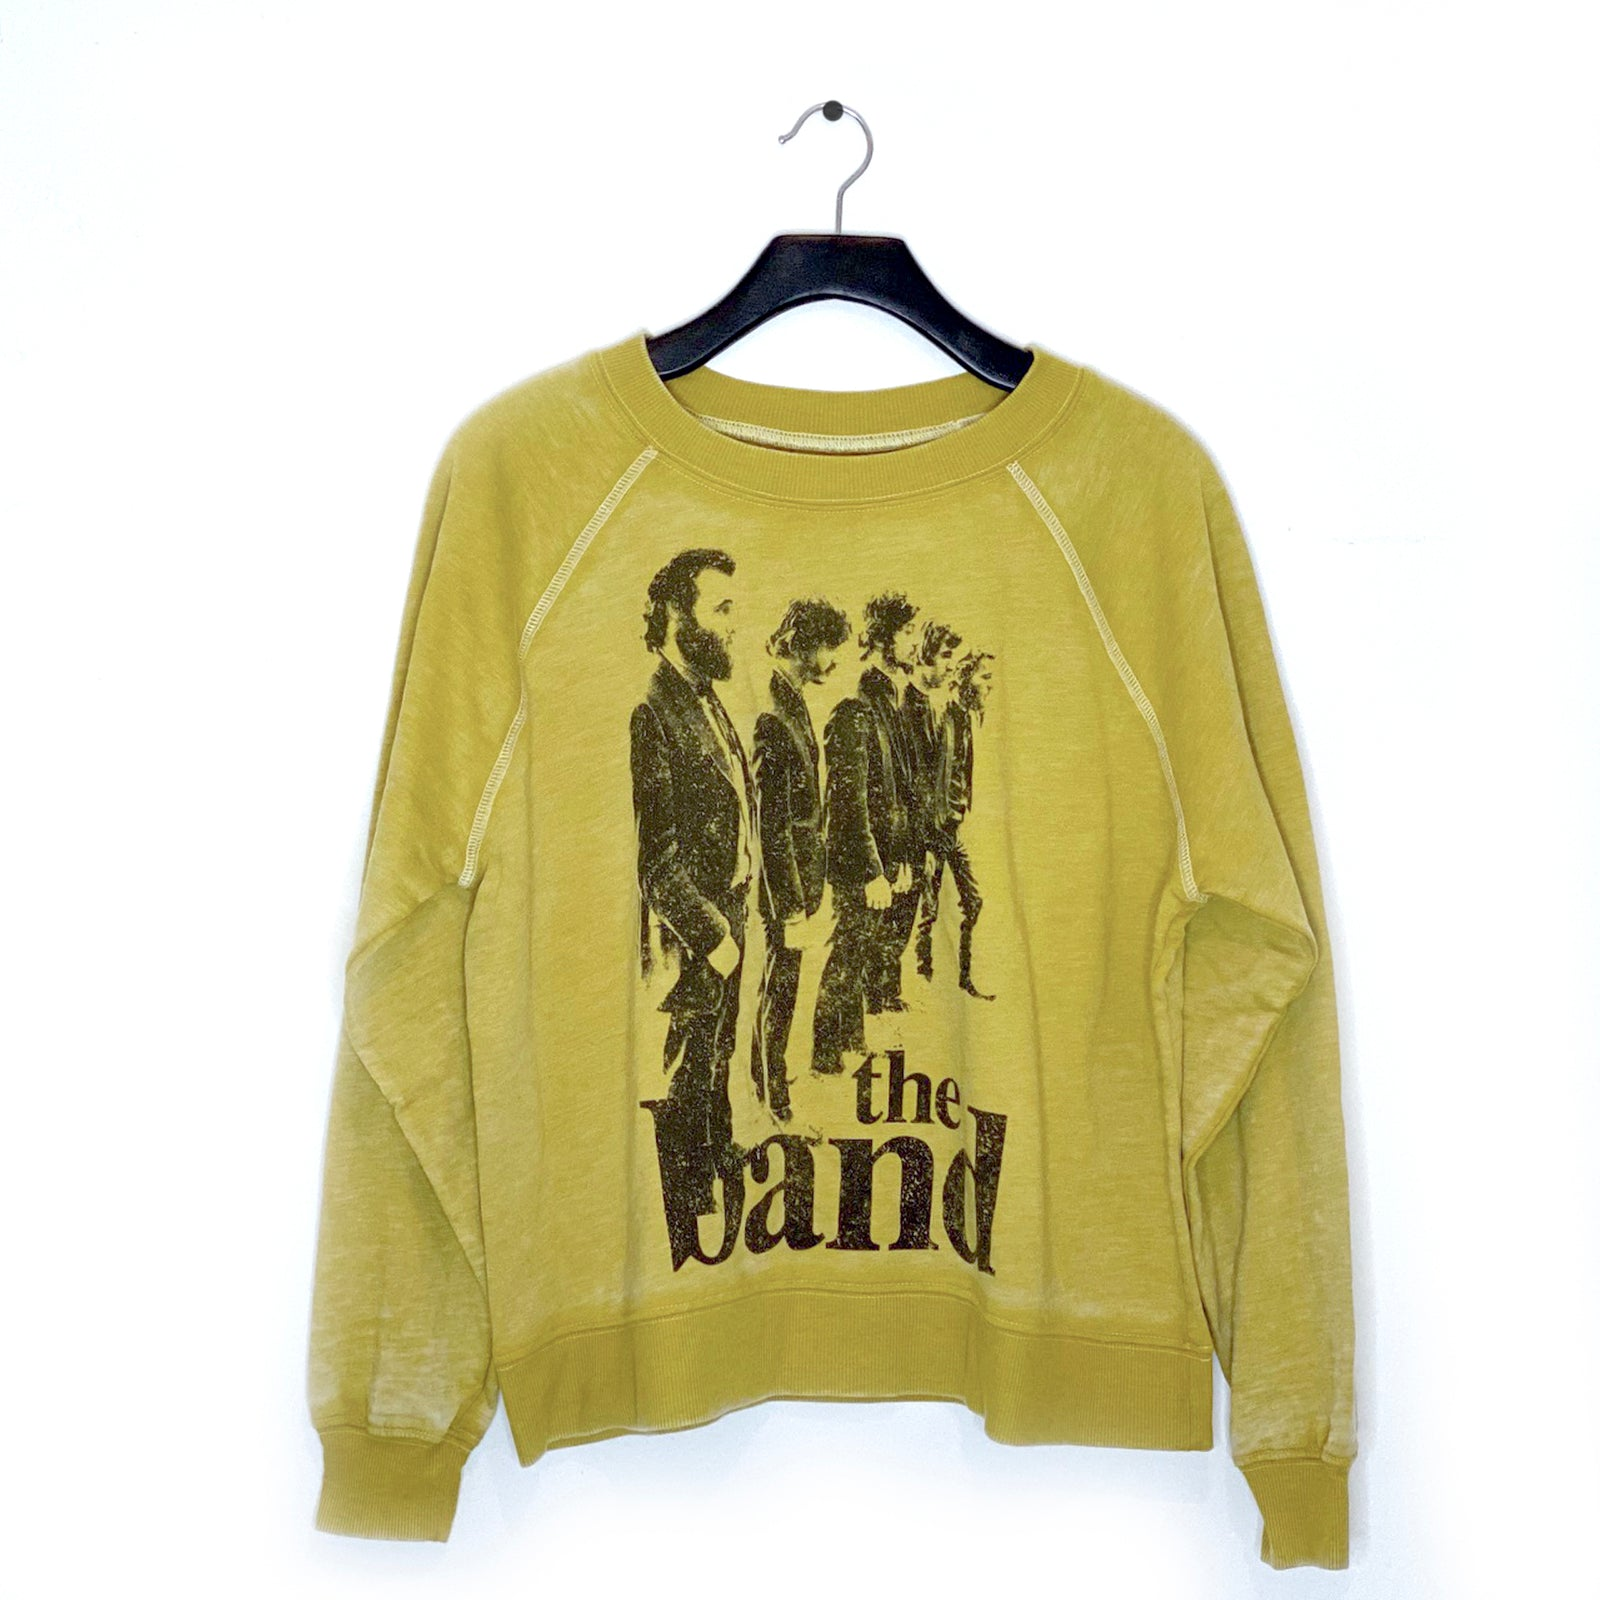 The Band Sweatshirt